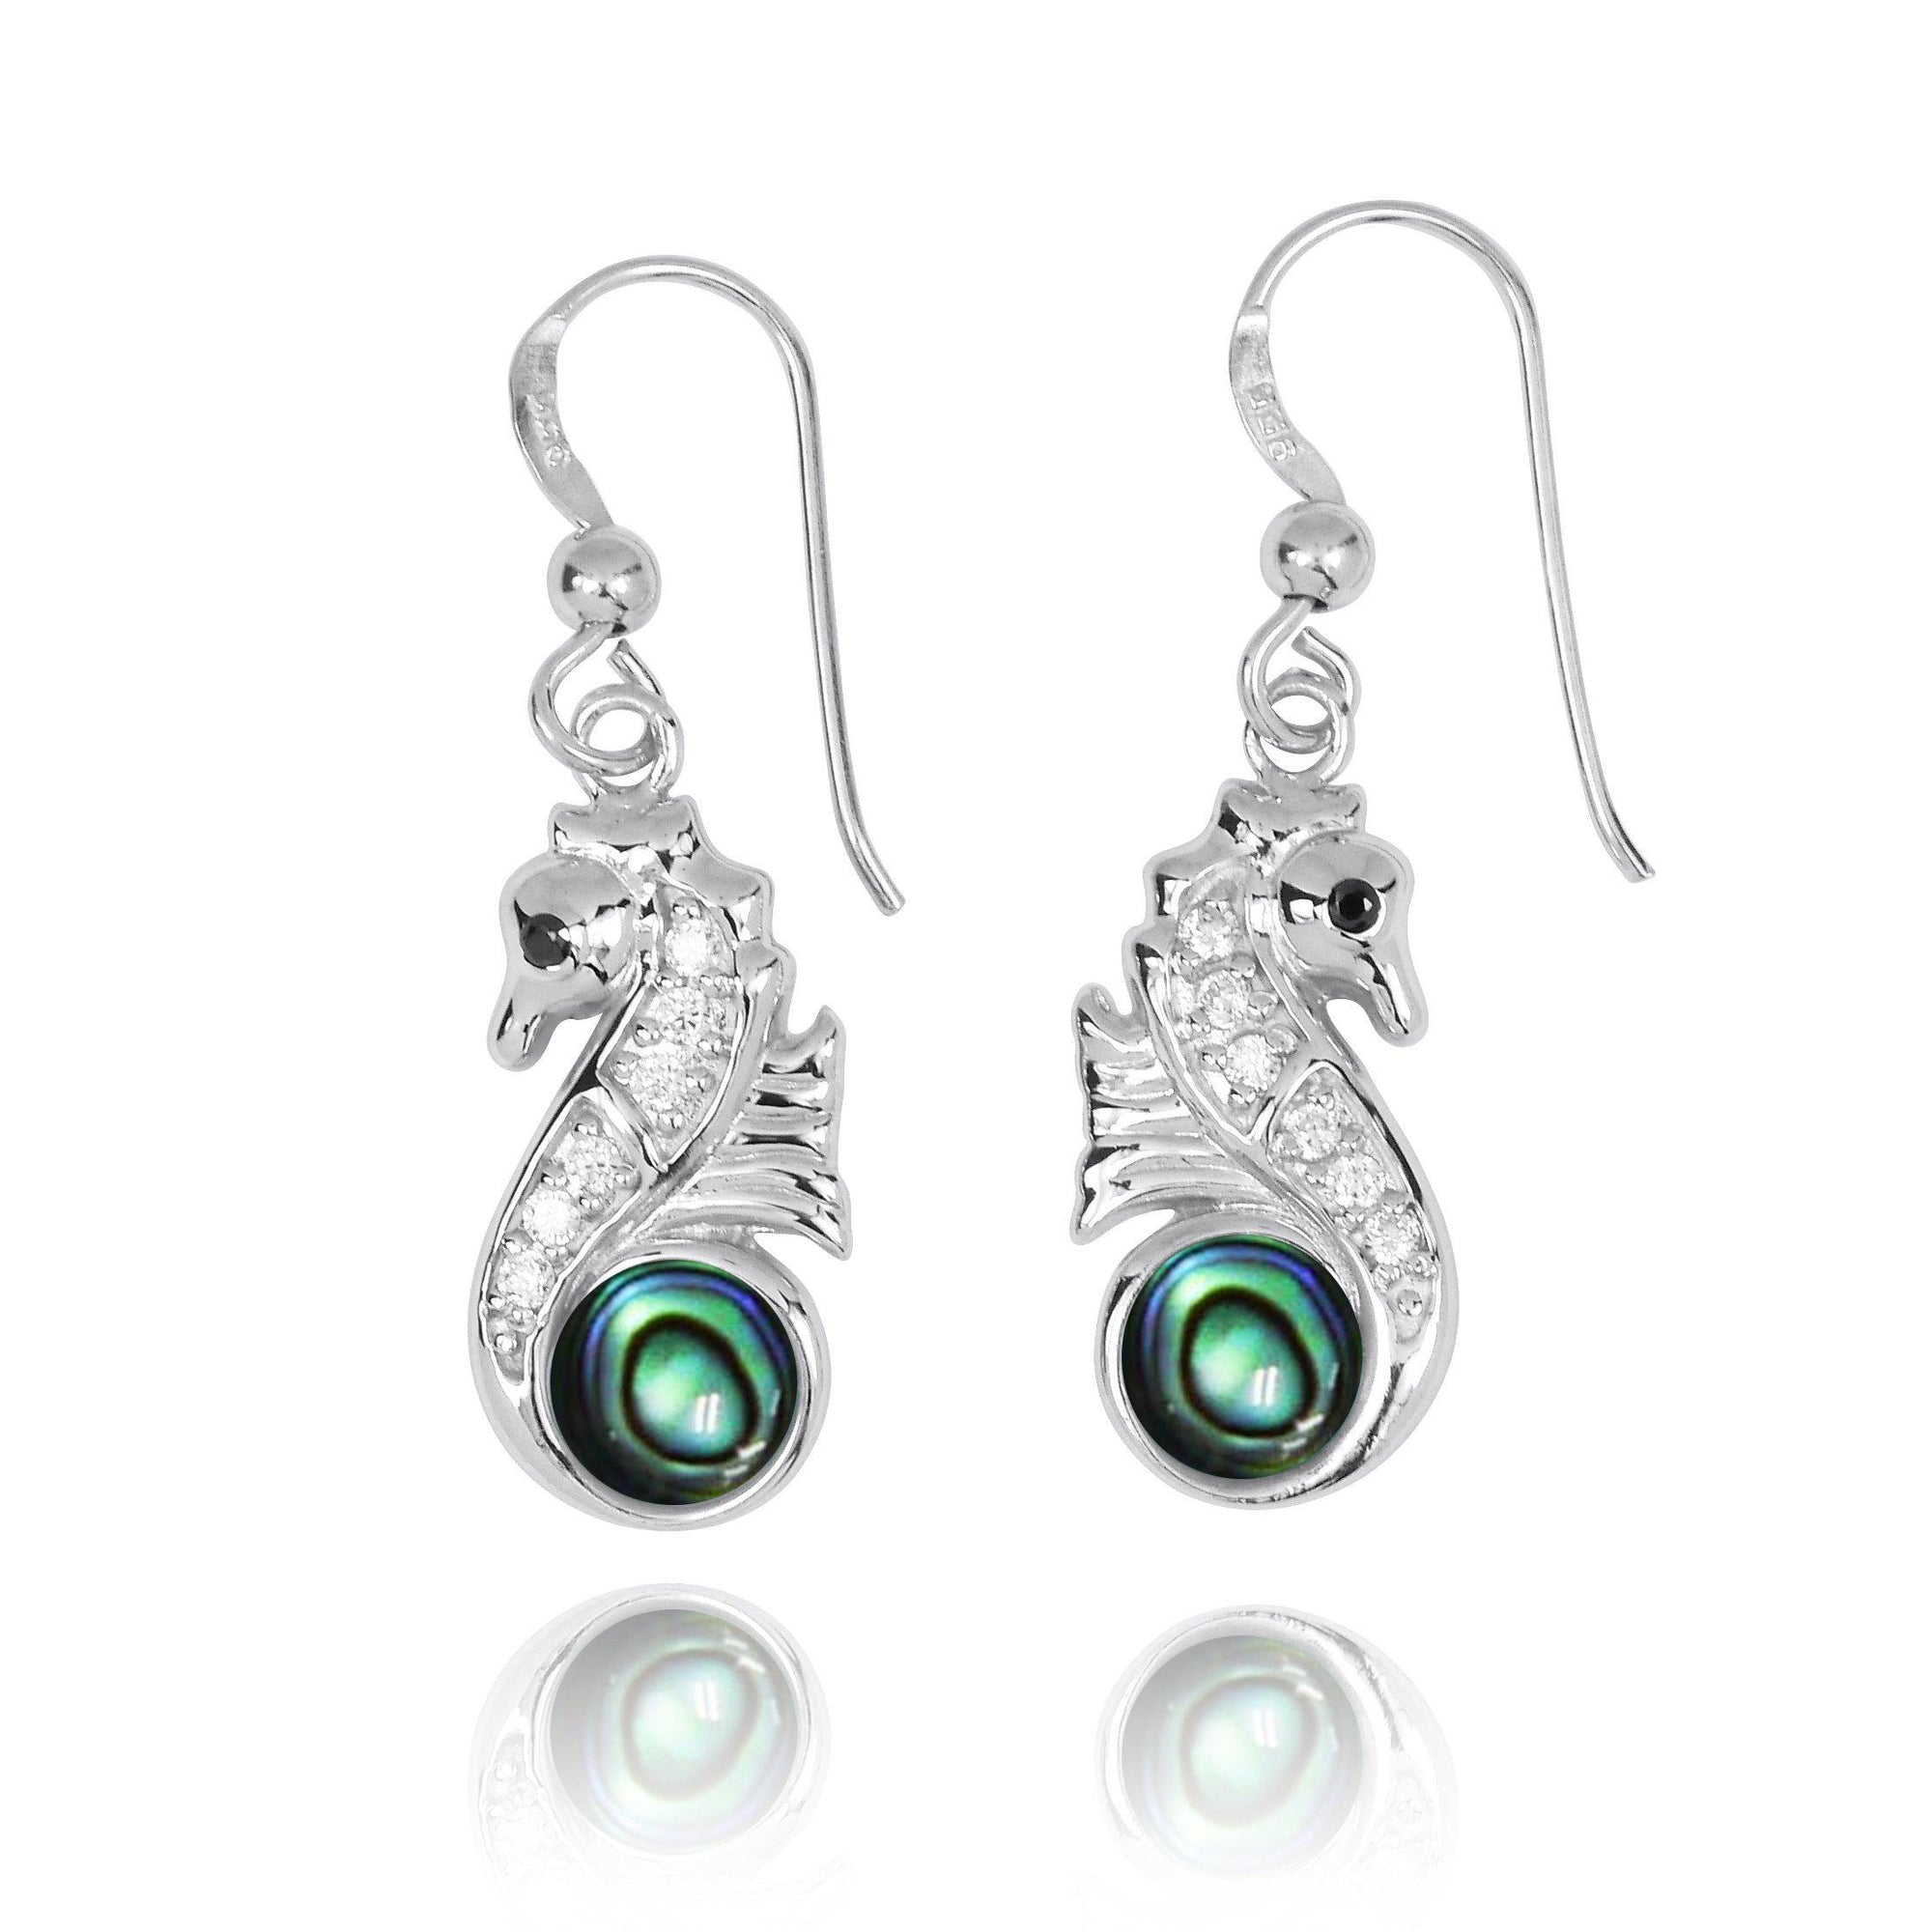 Sterling Silver Seahorse Drop Earrings with Abalone Shell and CZ